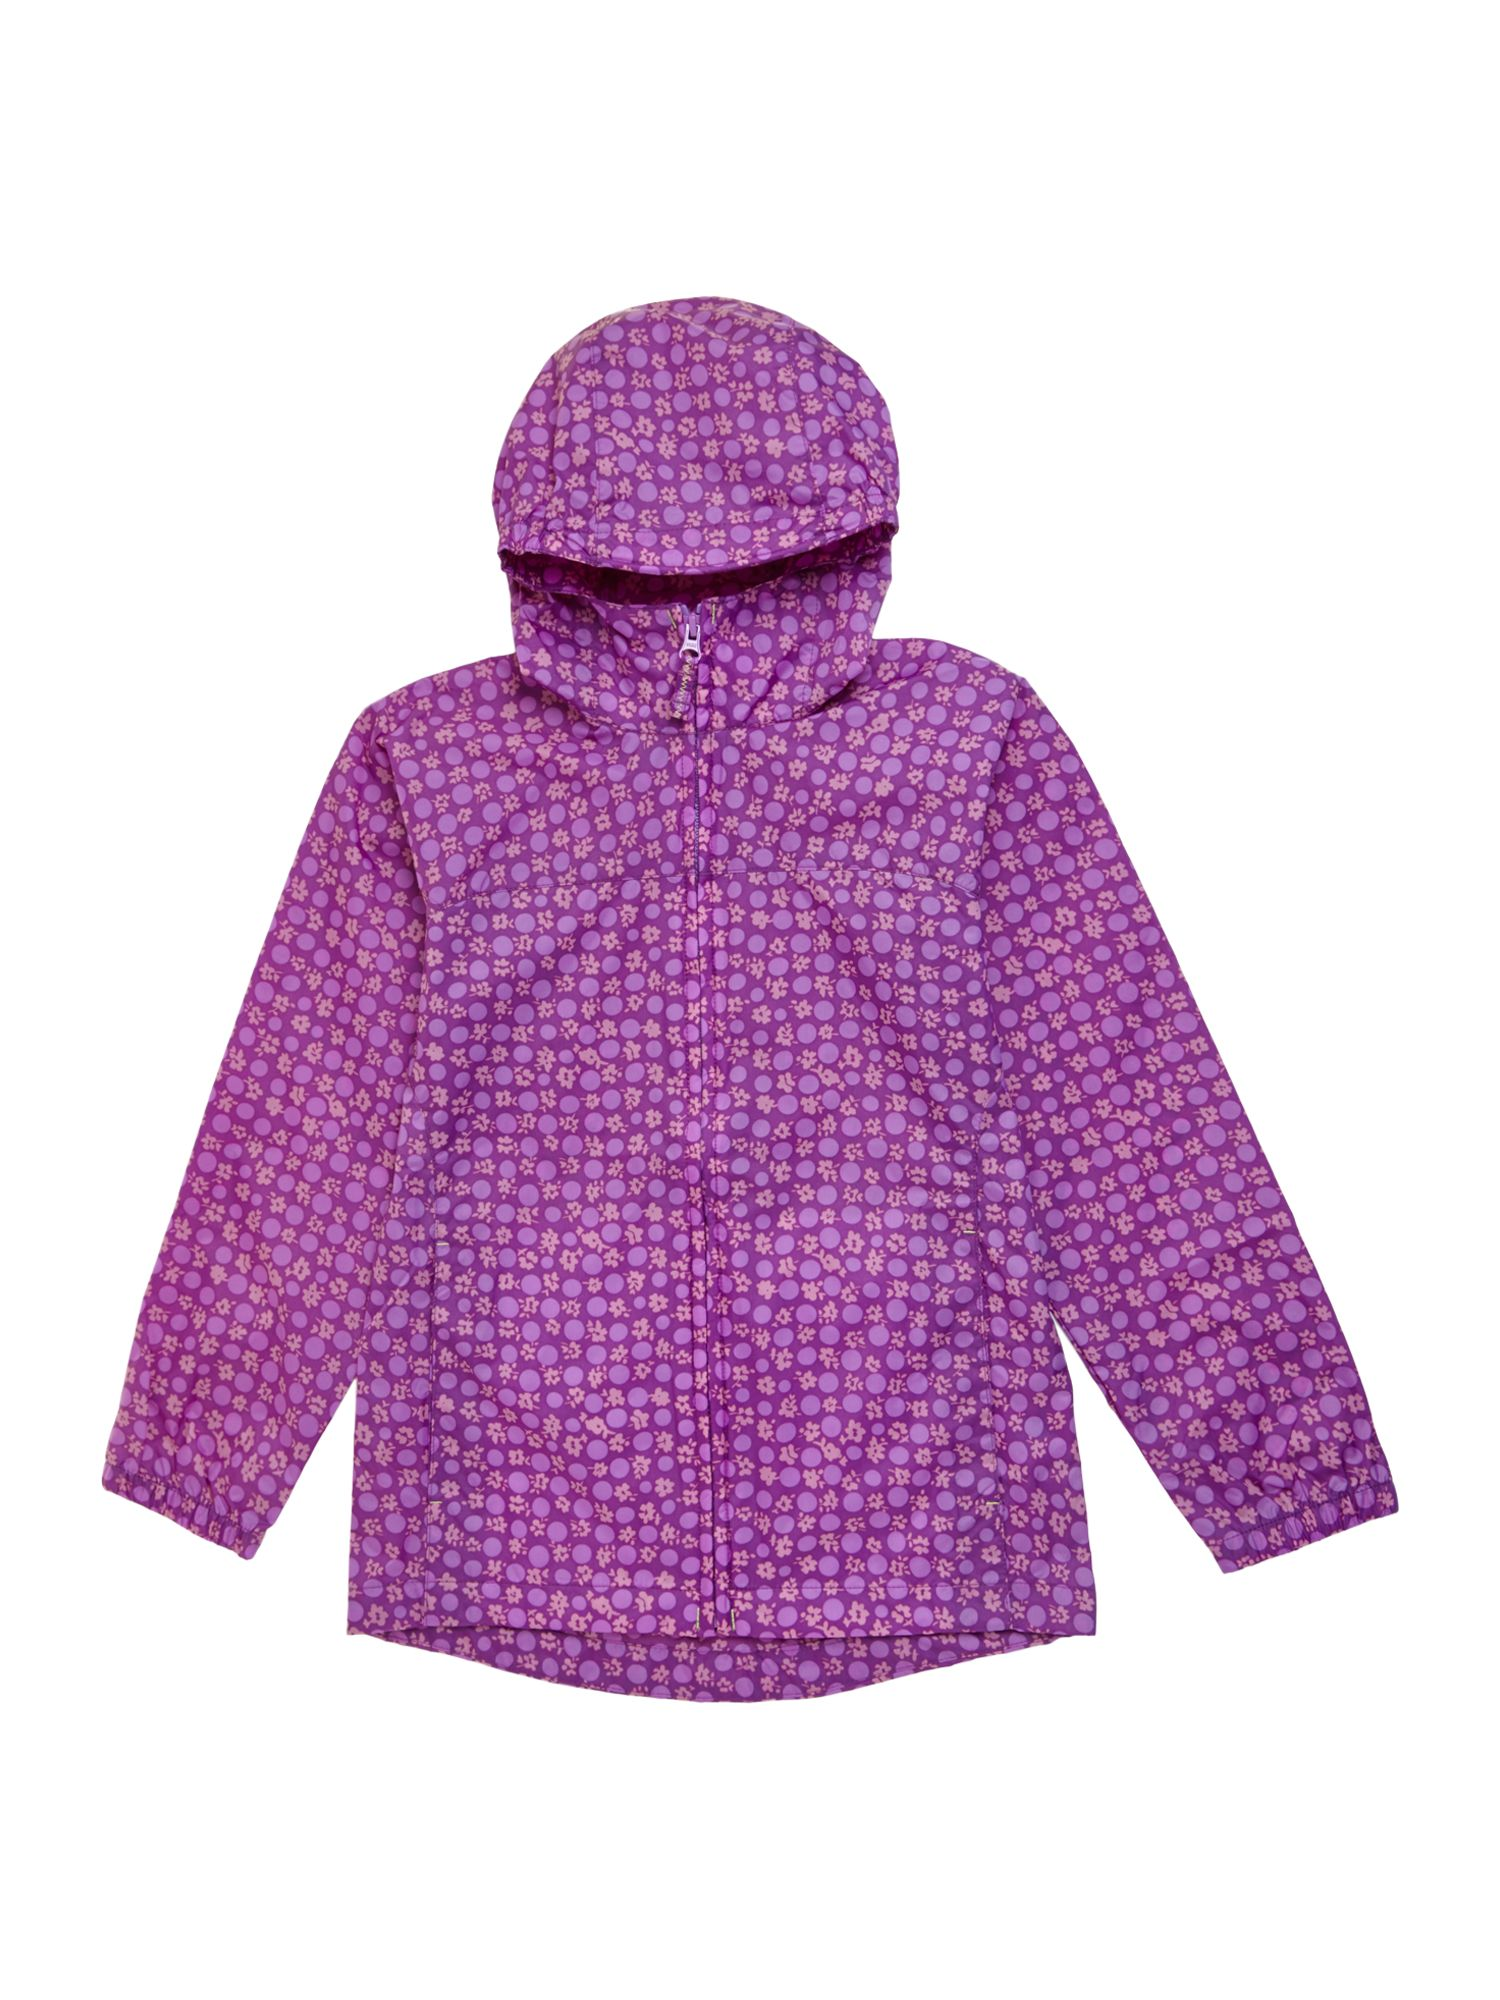 Girls Packable Patterned Rain Jacket